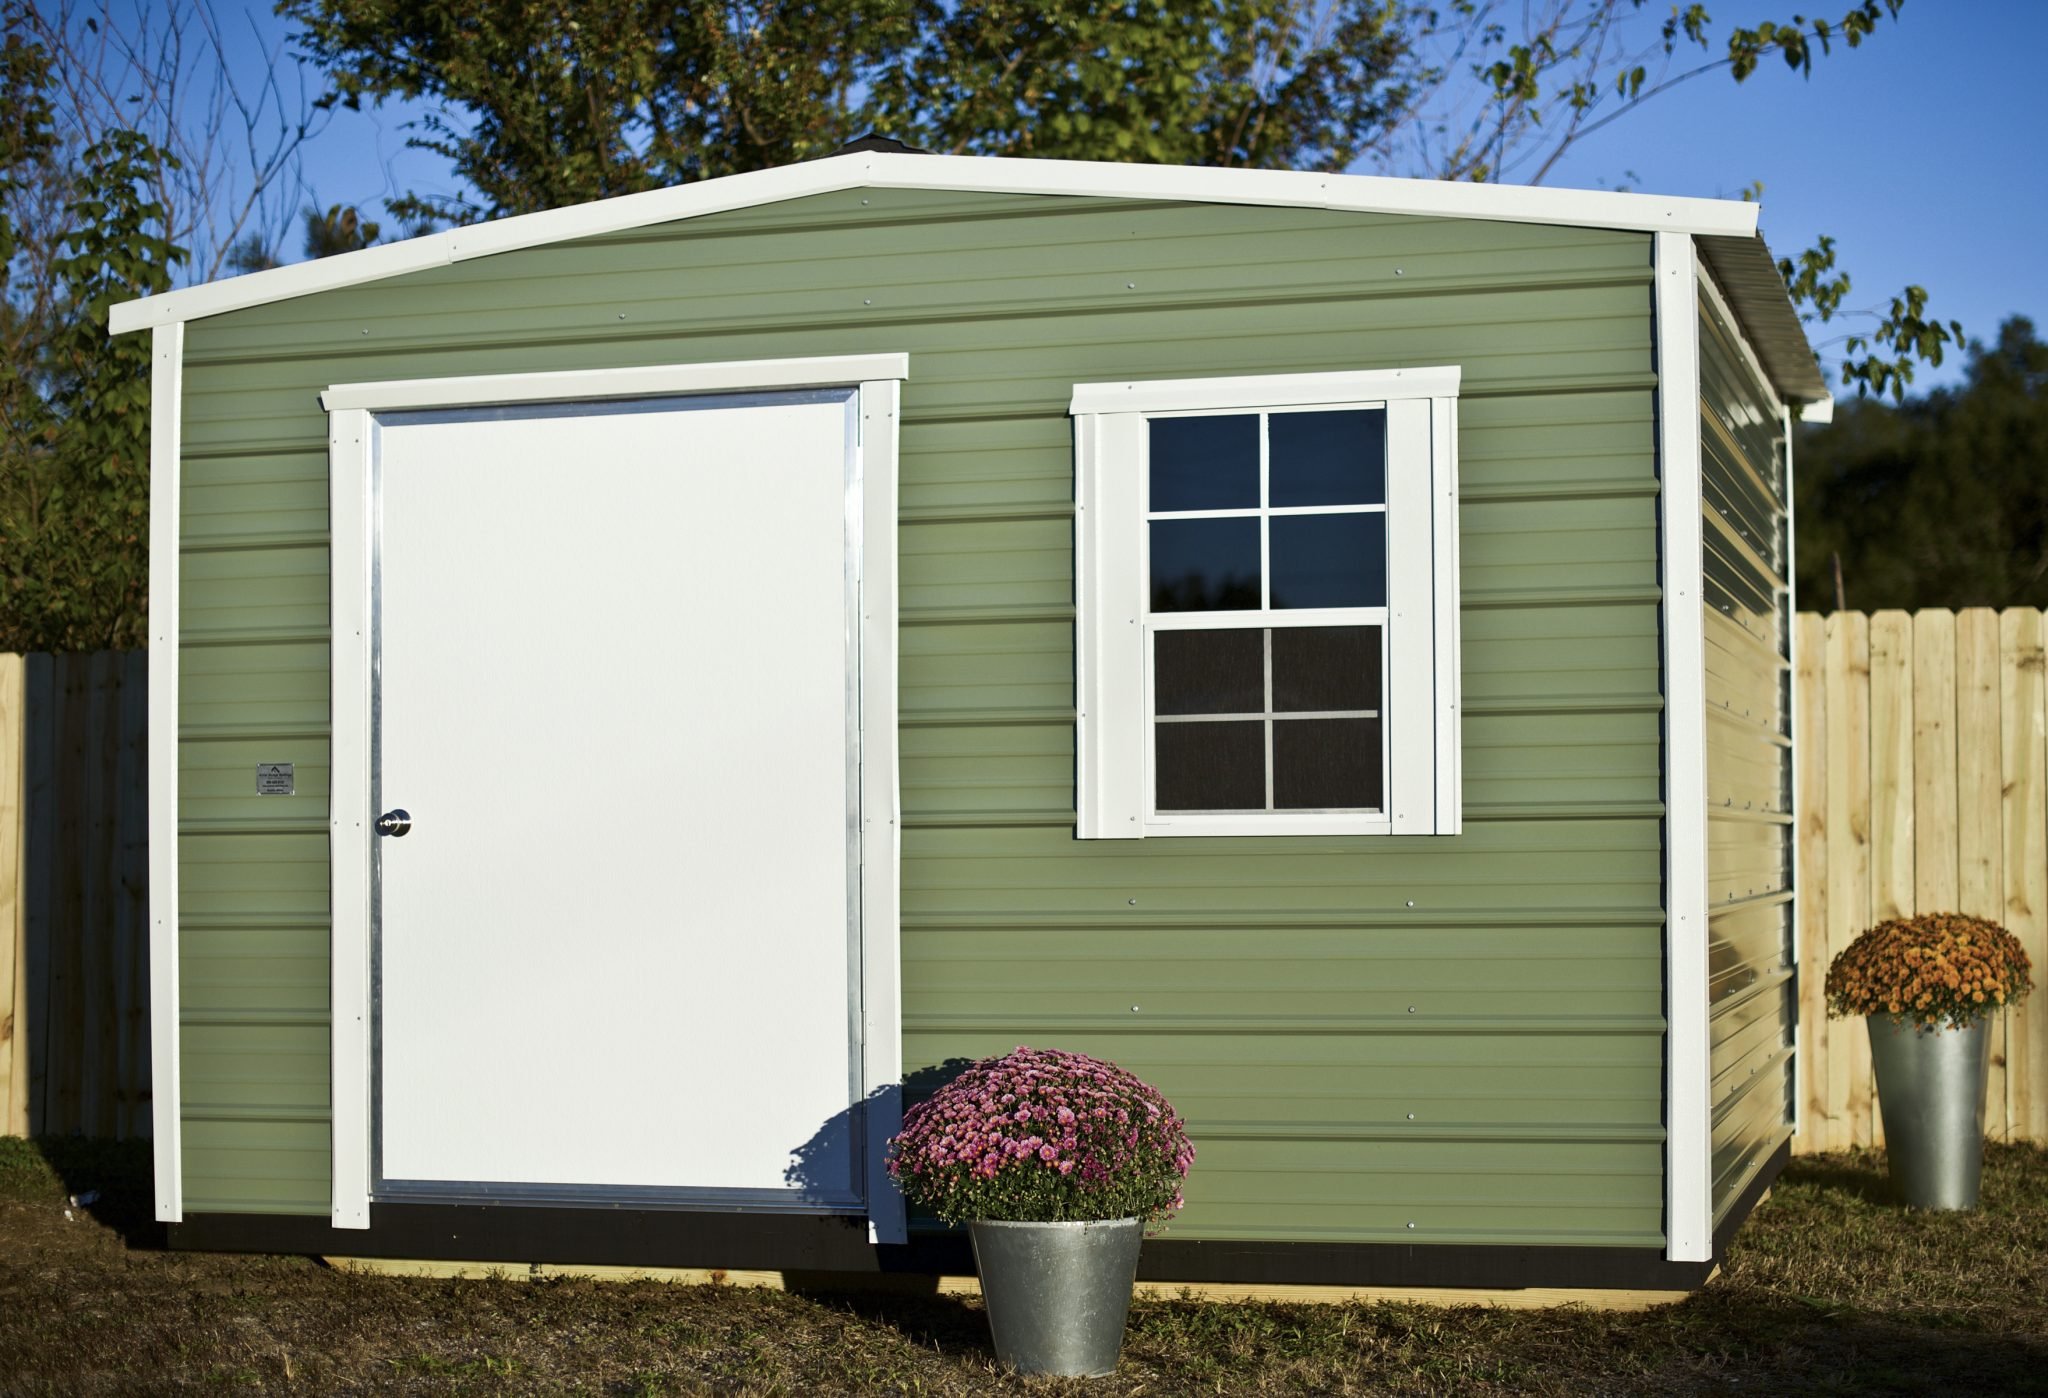 Traditional Storage Buildings | Portable Utility Sheds ...